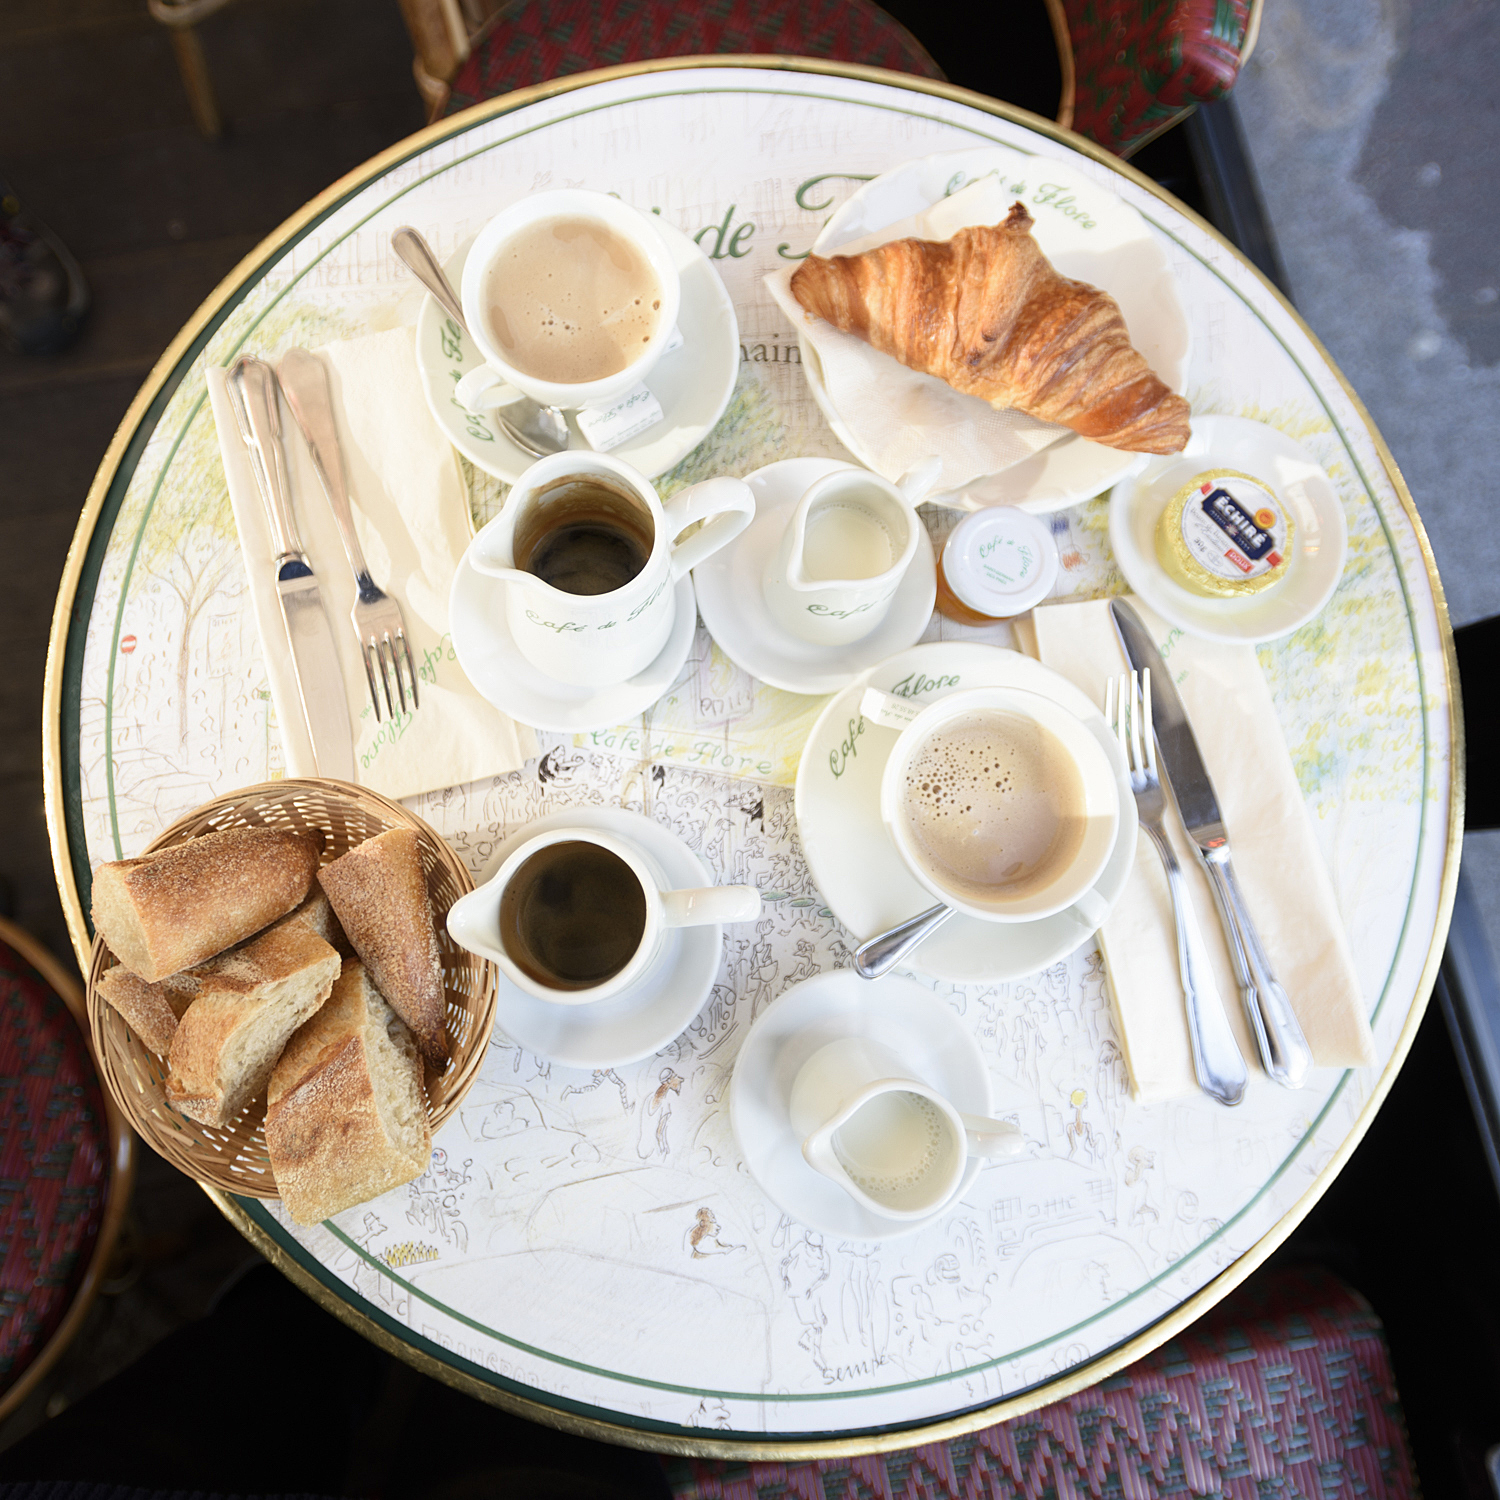 Breakfast for two at the Café de Flore, sitting outside on a spring day.